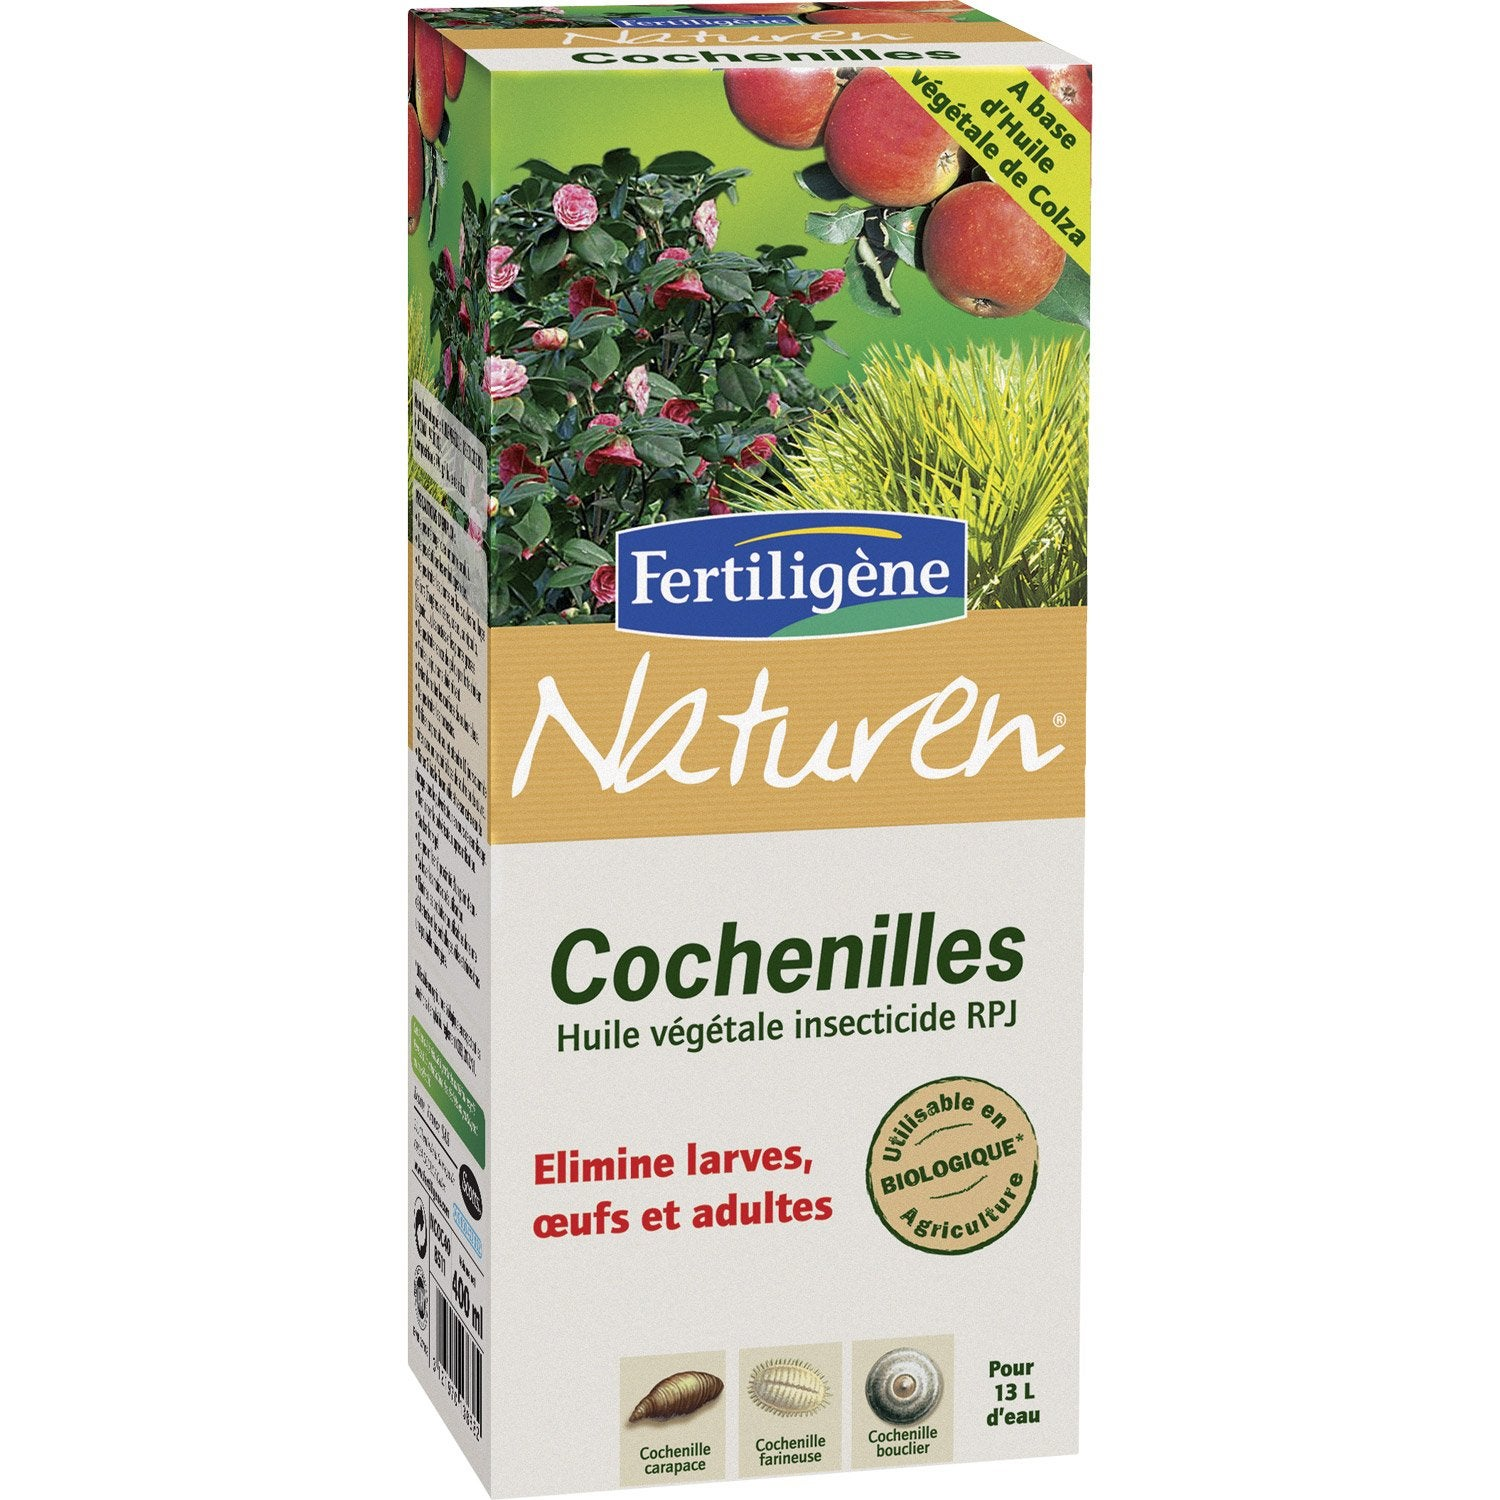 traitement des insectes cochenilles naturen 400ml leroy merlin. Black Bedroom Furniture Sets. Home Design Ideas